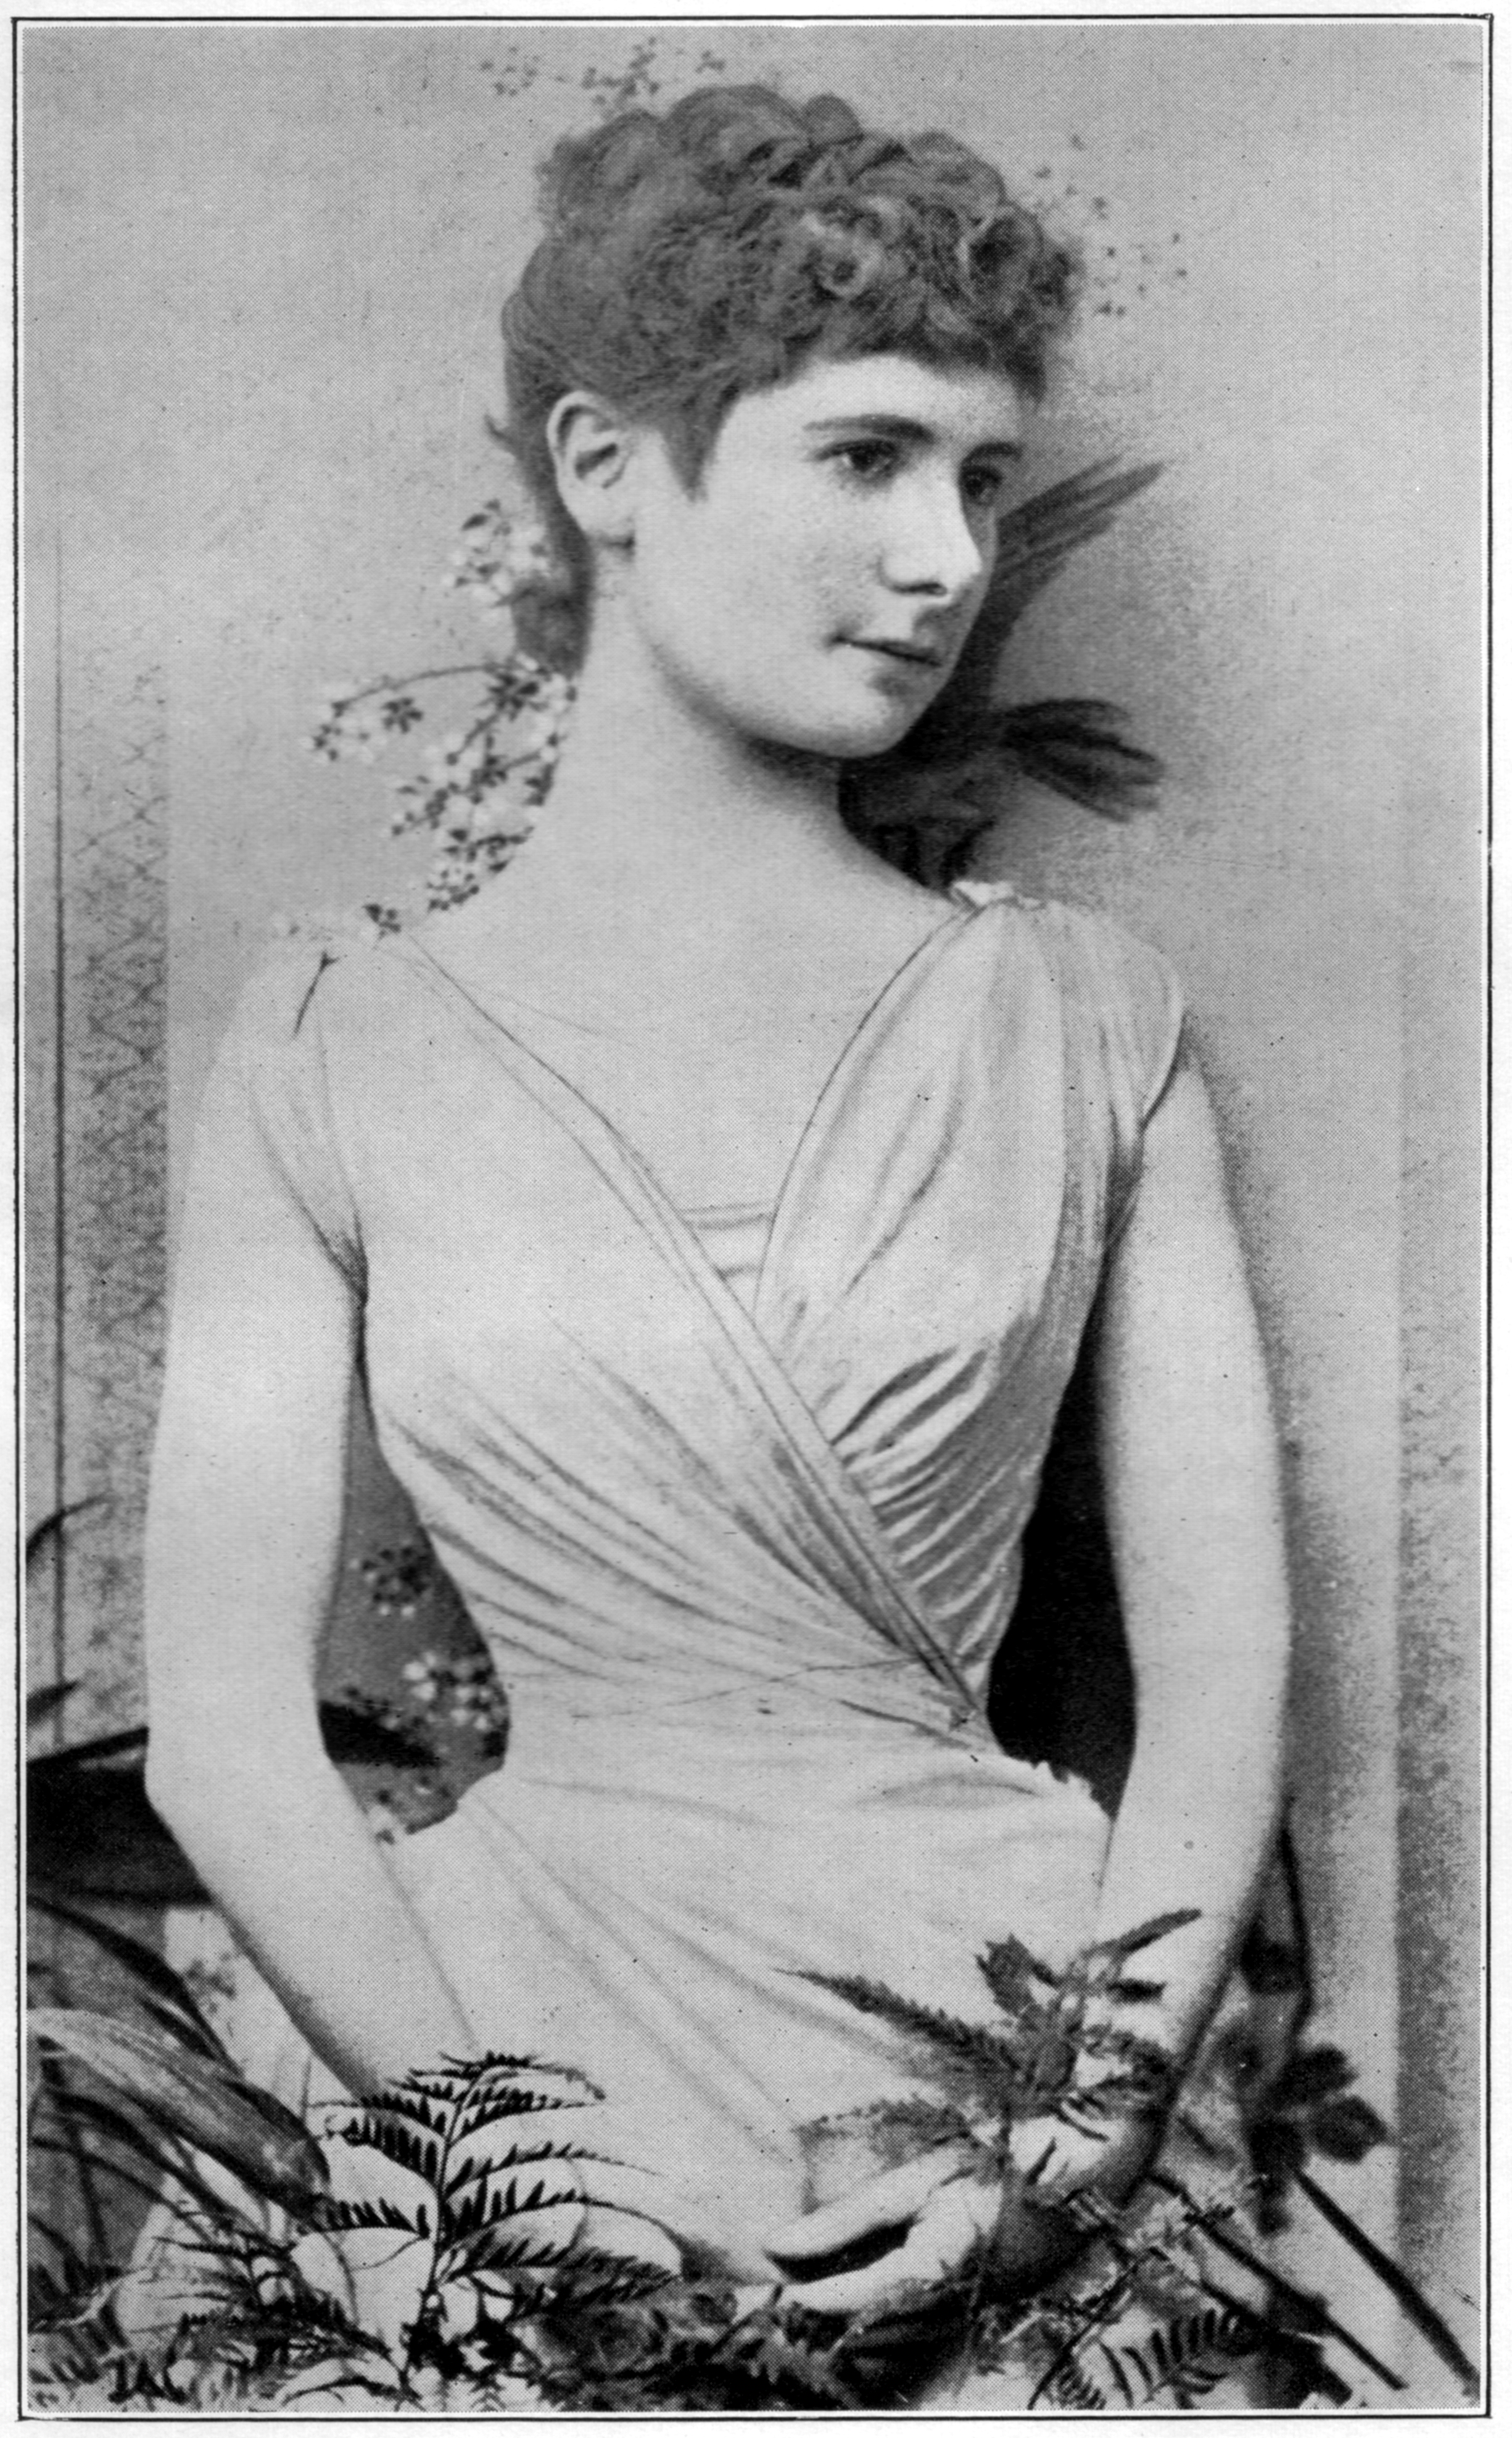 The young Ella Hepworth Dixon is photographed in ¾ view. She is wearing an evening dress and posed behind potted plants.